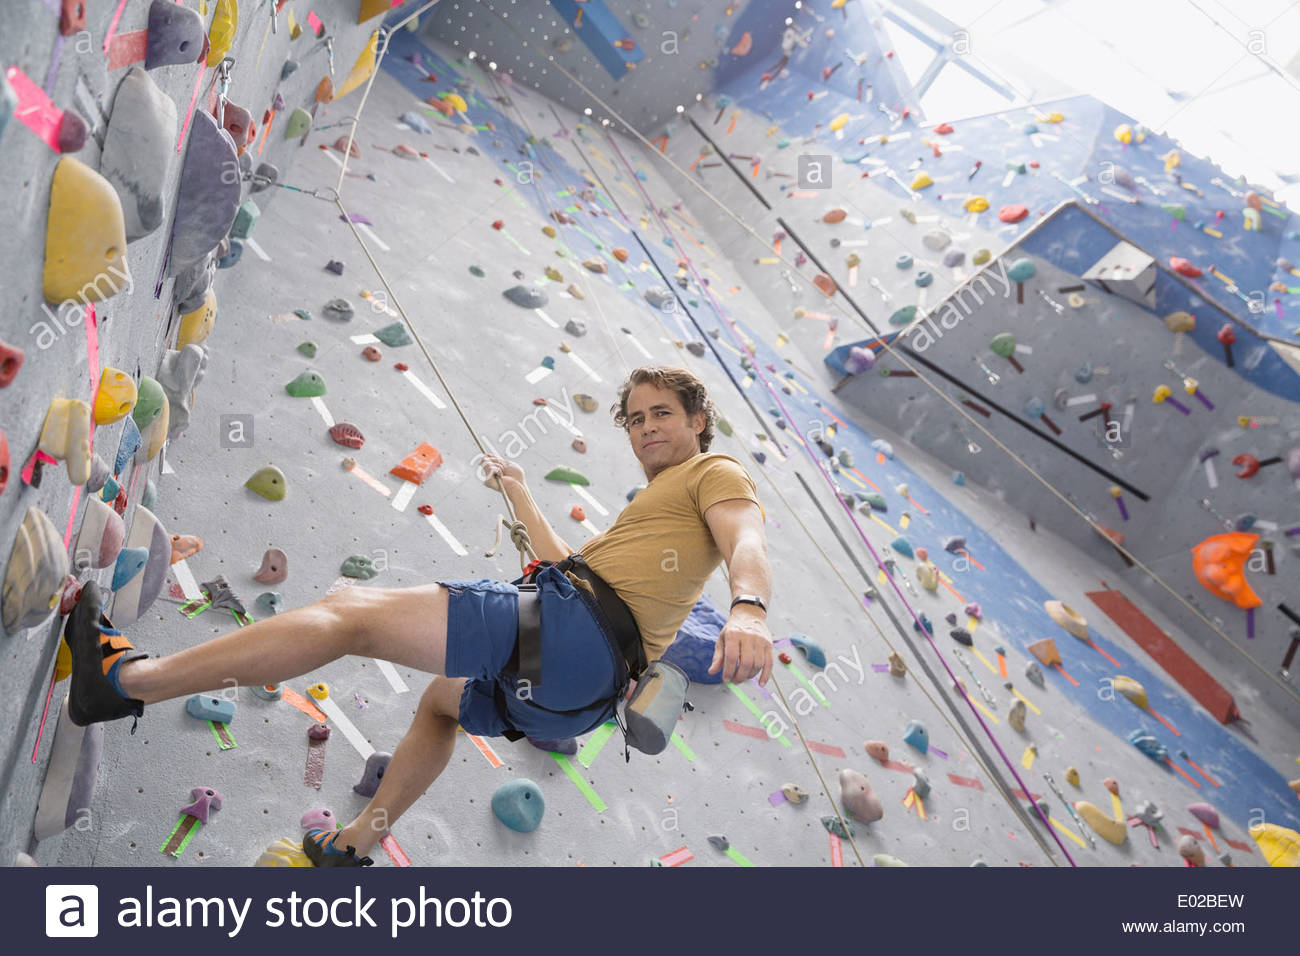 Portrait of man climbing indoor rock wall - Stock Image